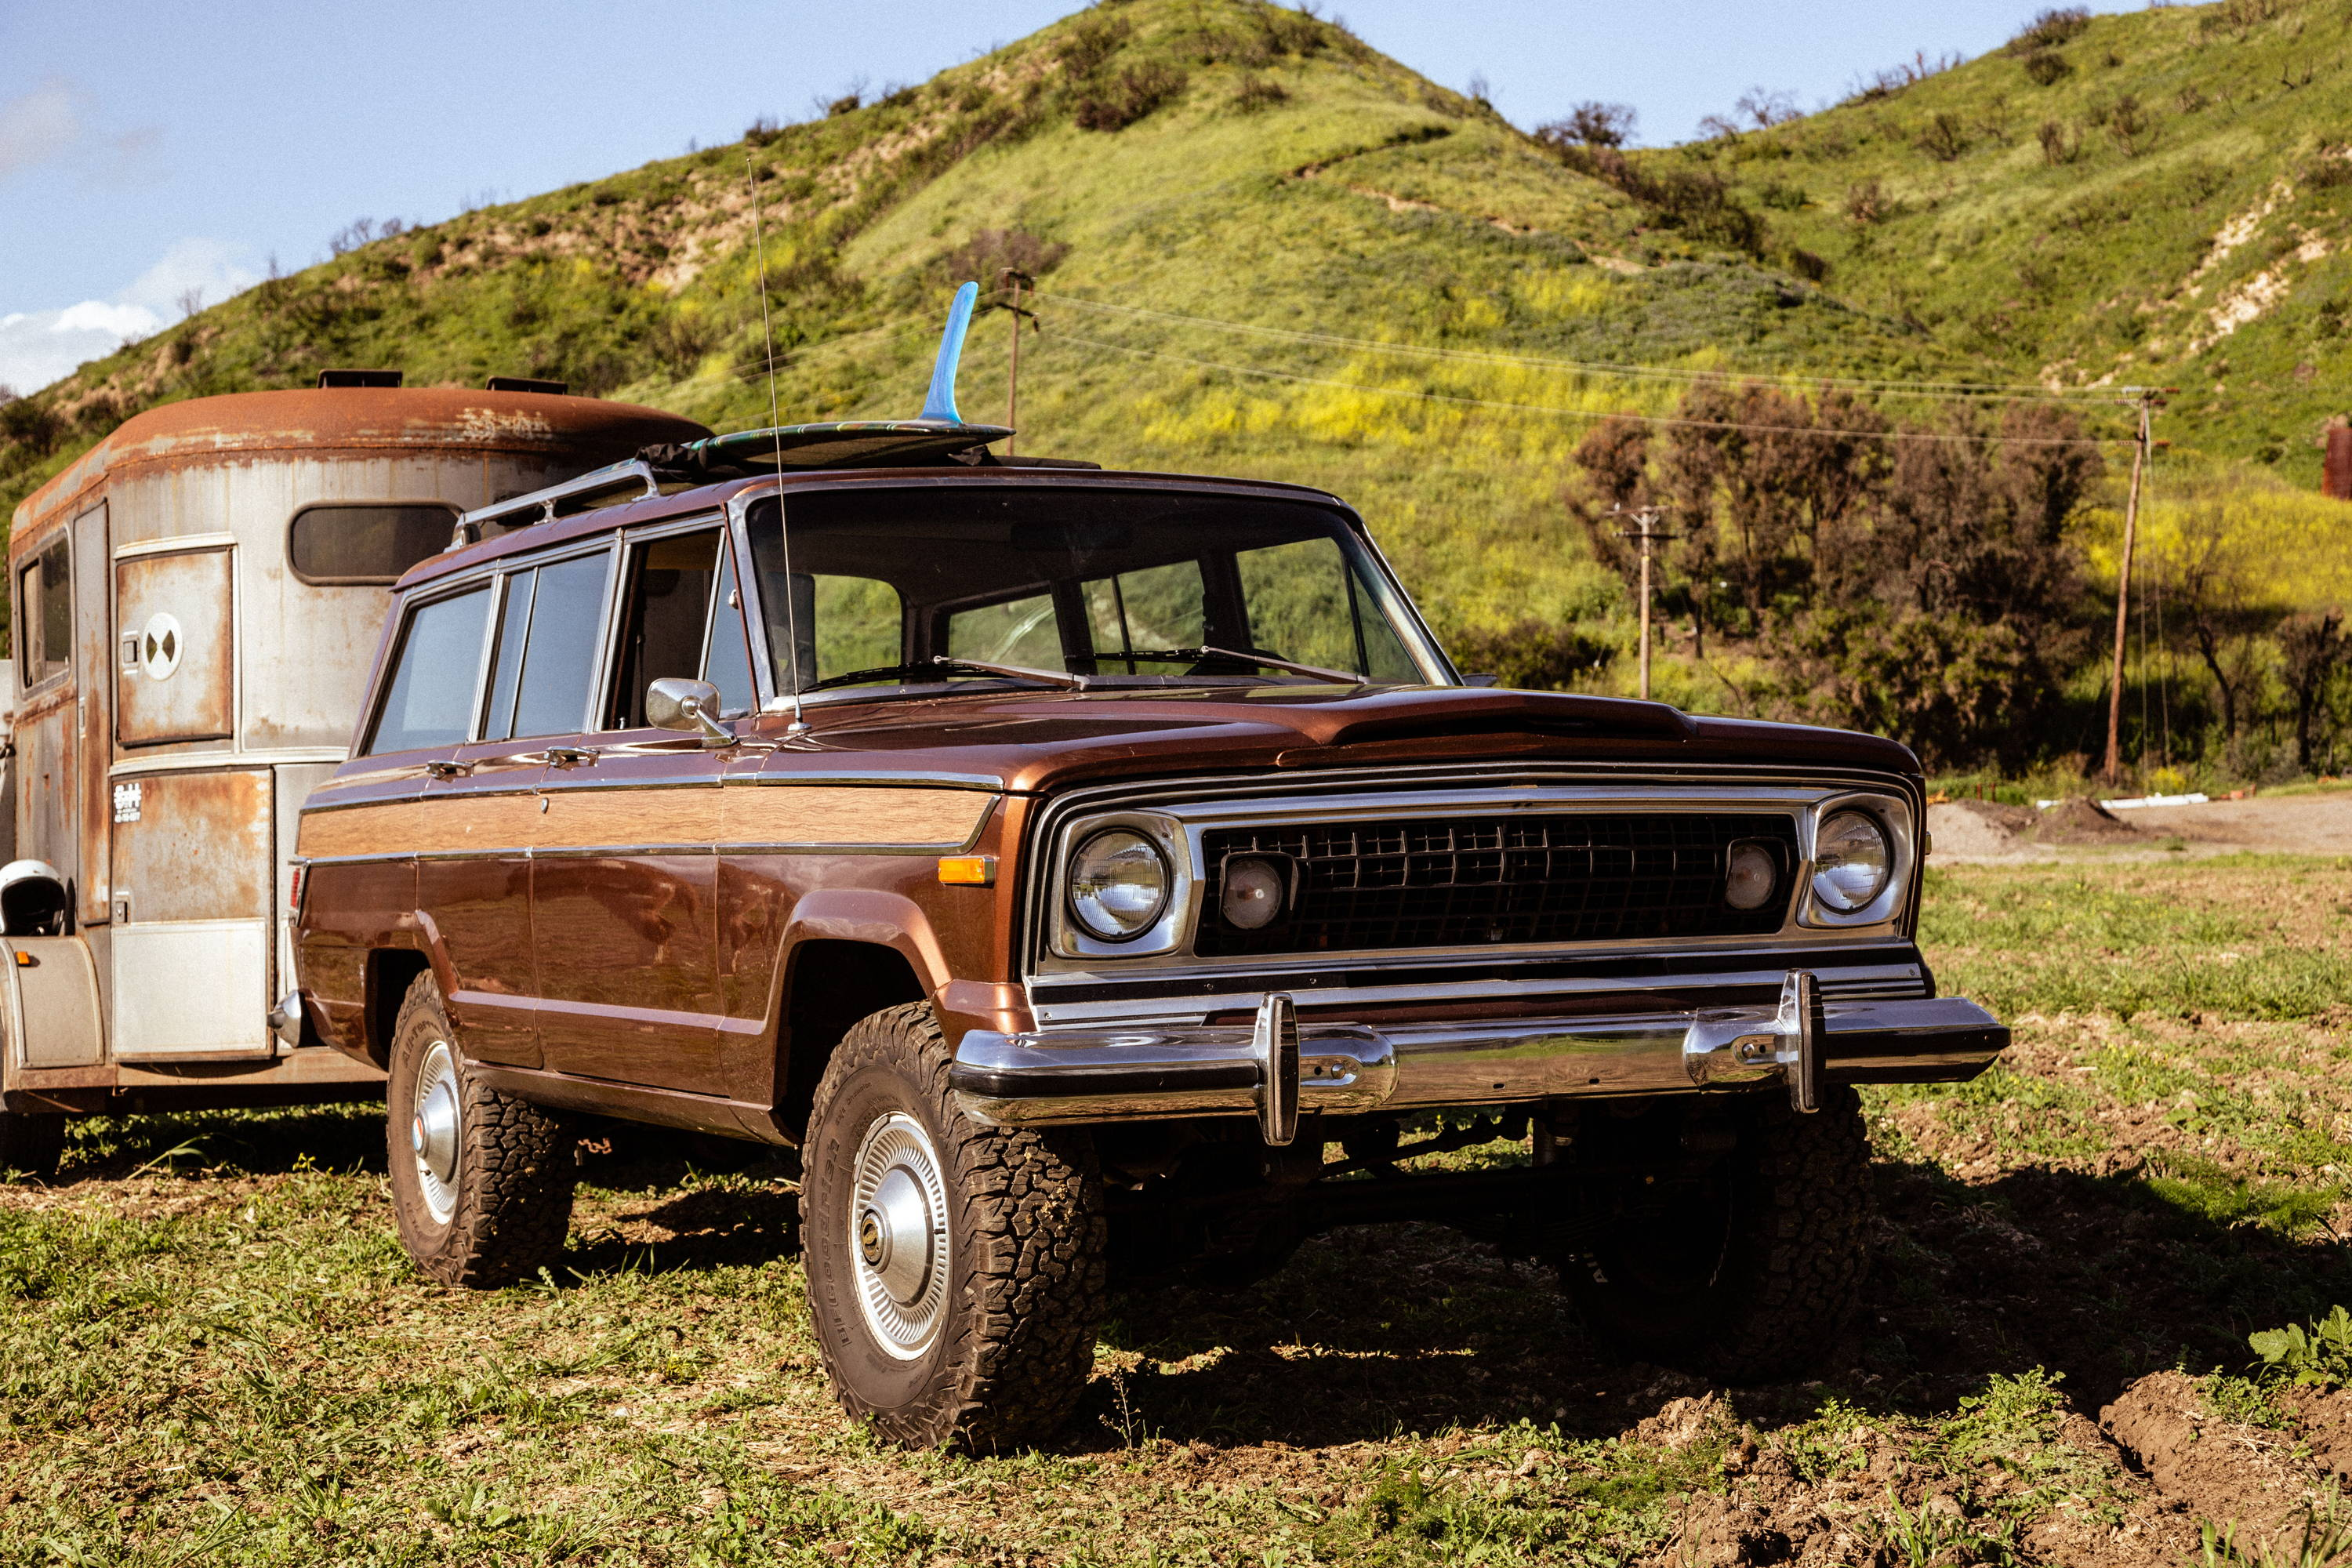 New Legend 4x4 x Iron & Resin 1978 Jeep Wagoneer with Front End Nostalgia